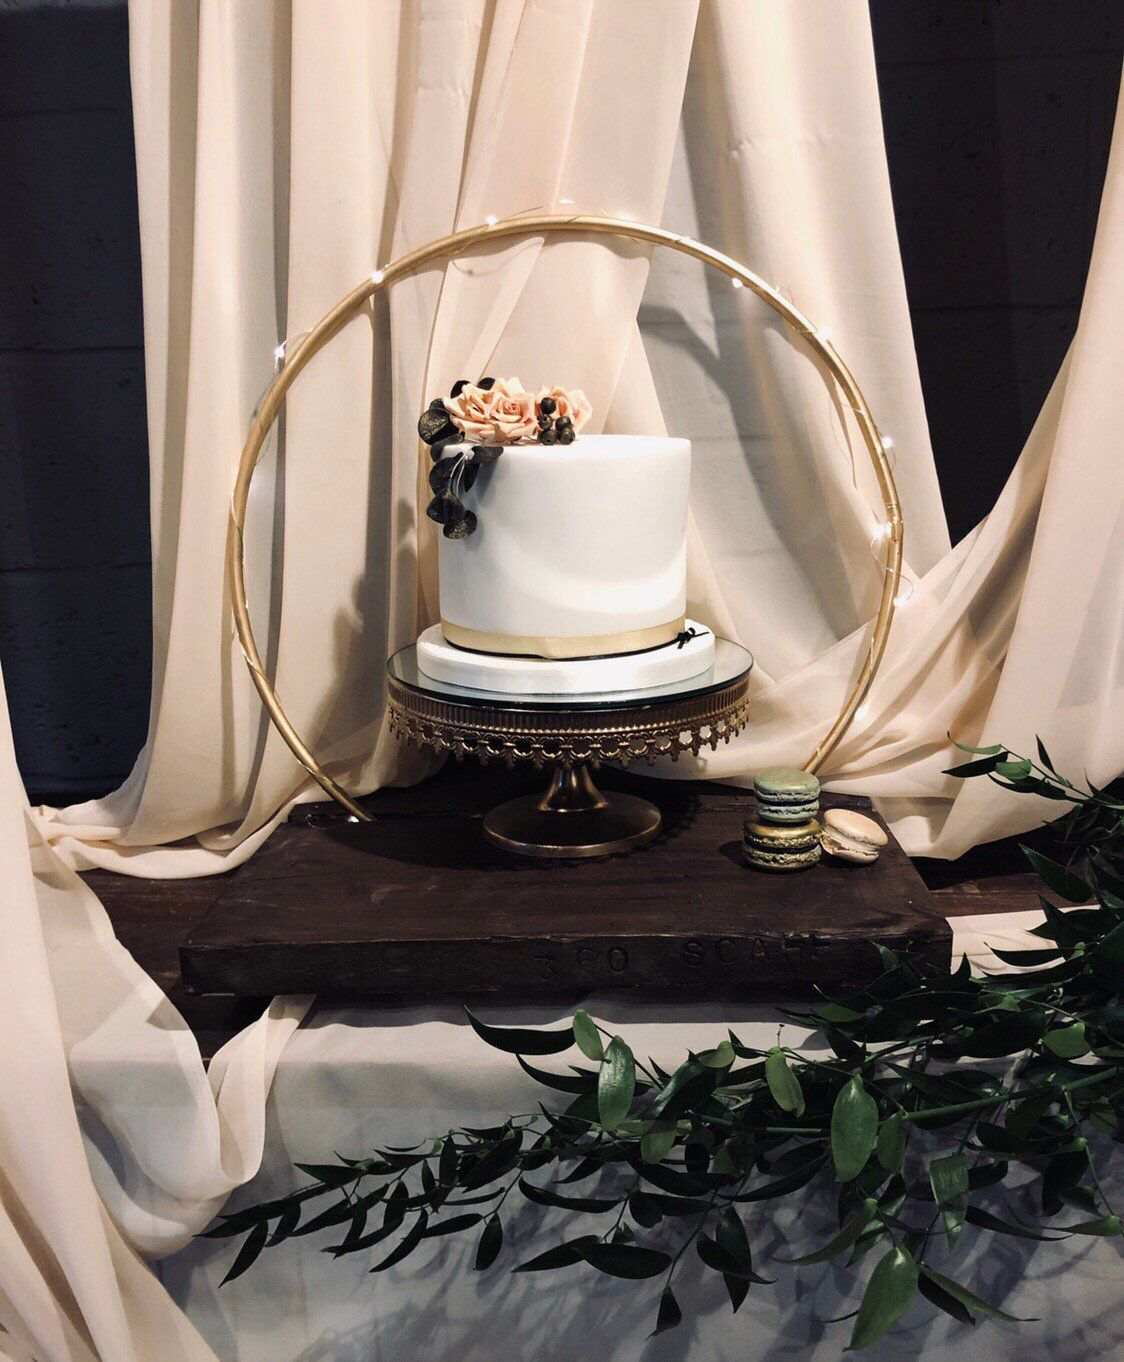 Cake Hoop Stand, Hoop And Base Sold Separately